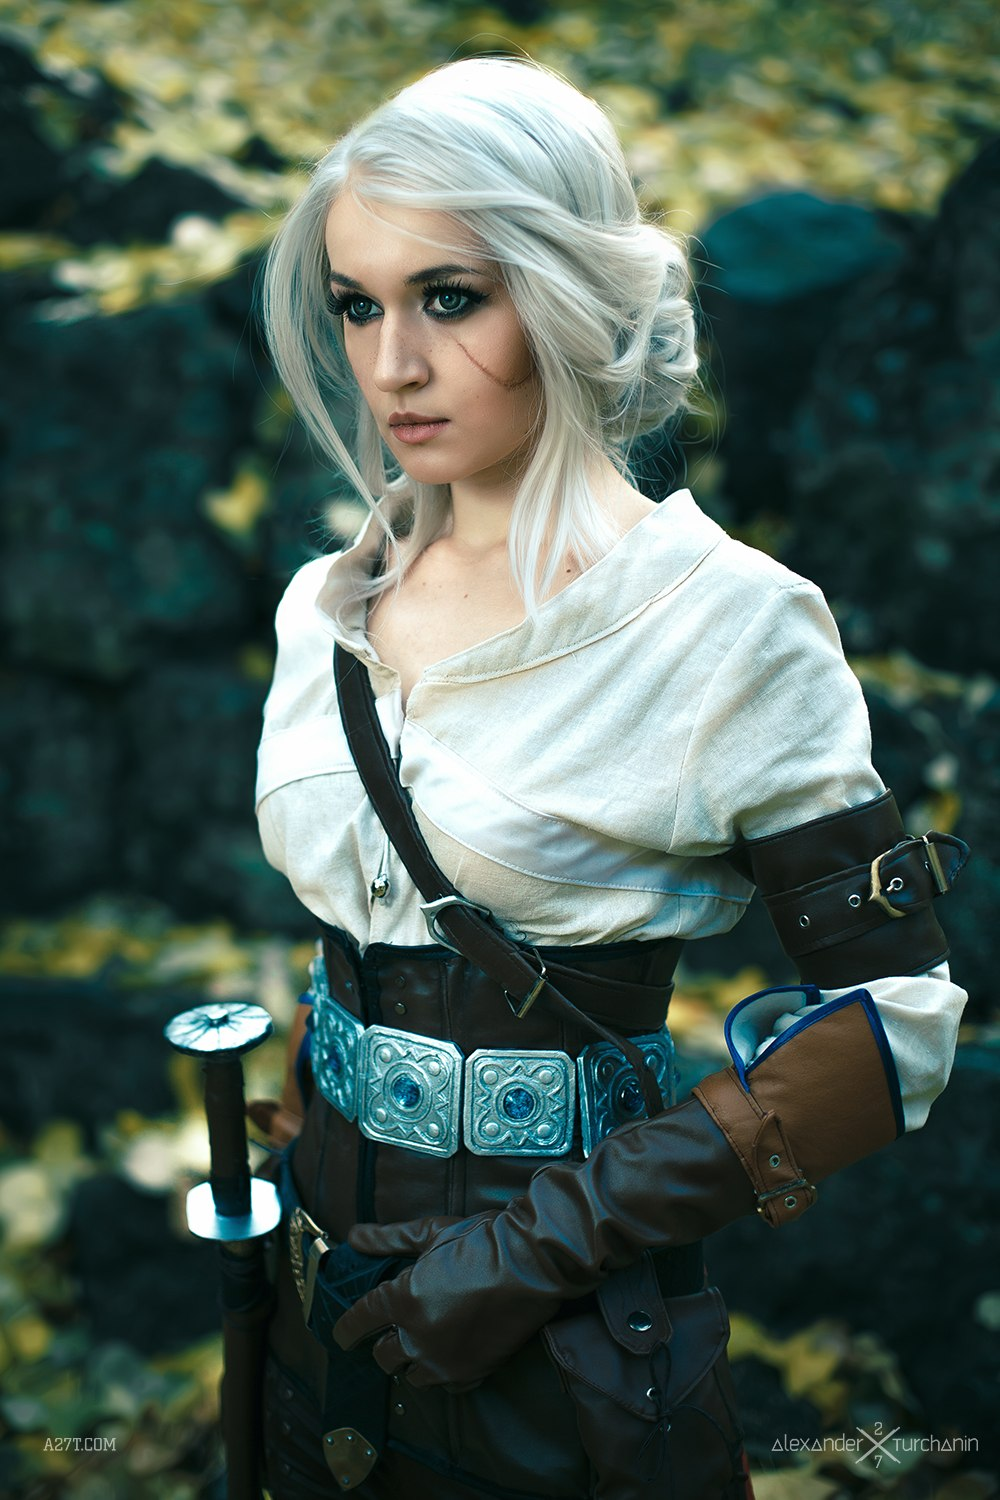 game of thrones, emilia clarke, daenerys targaryen, game of thrones cast, ciri, the witcher 3, photoshop, cosplay